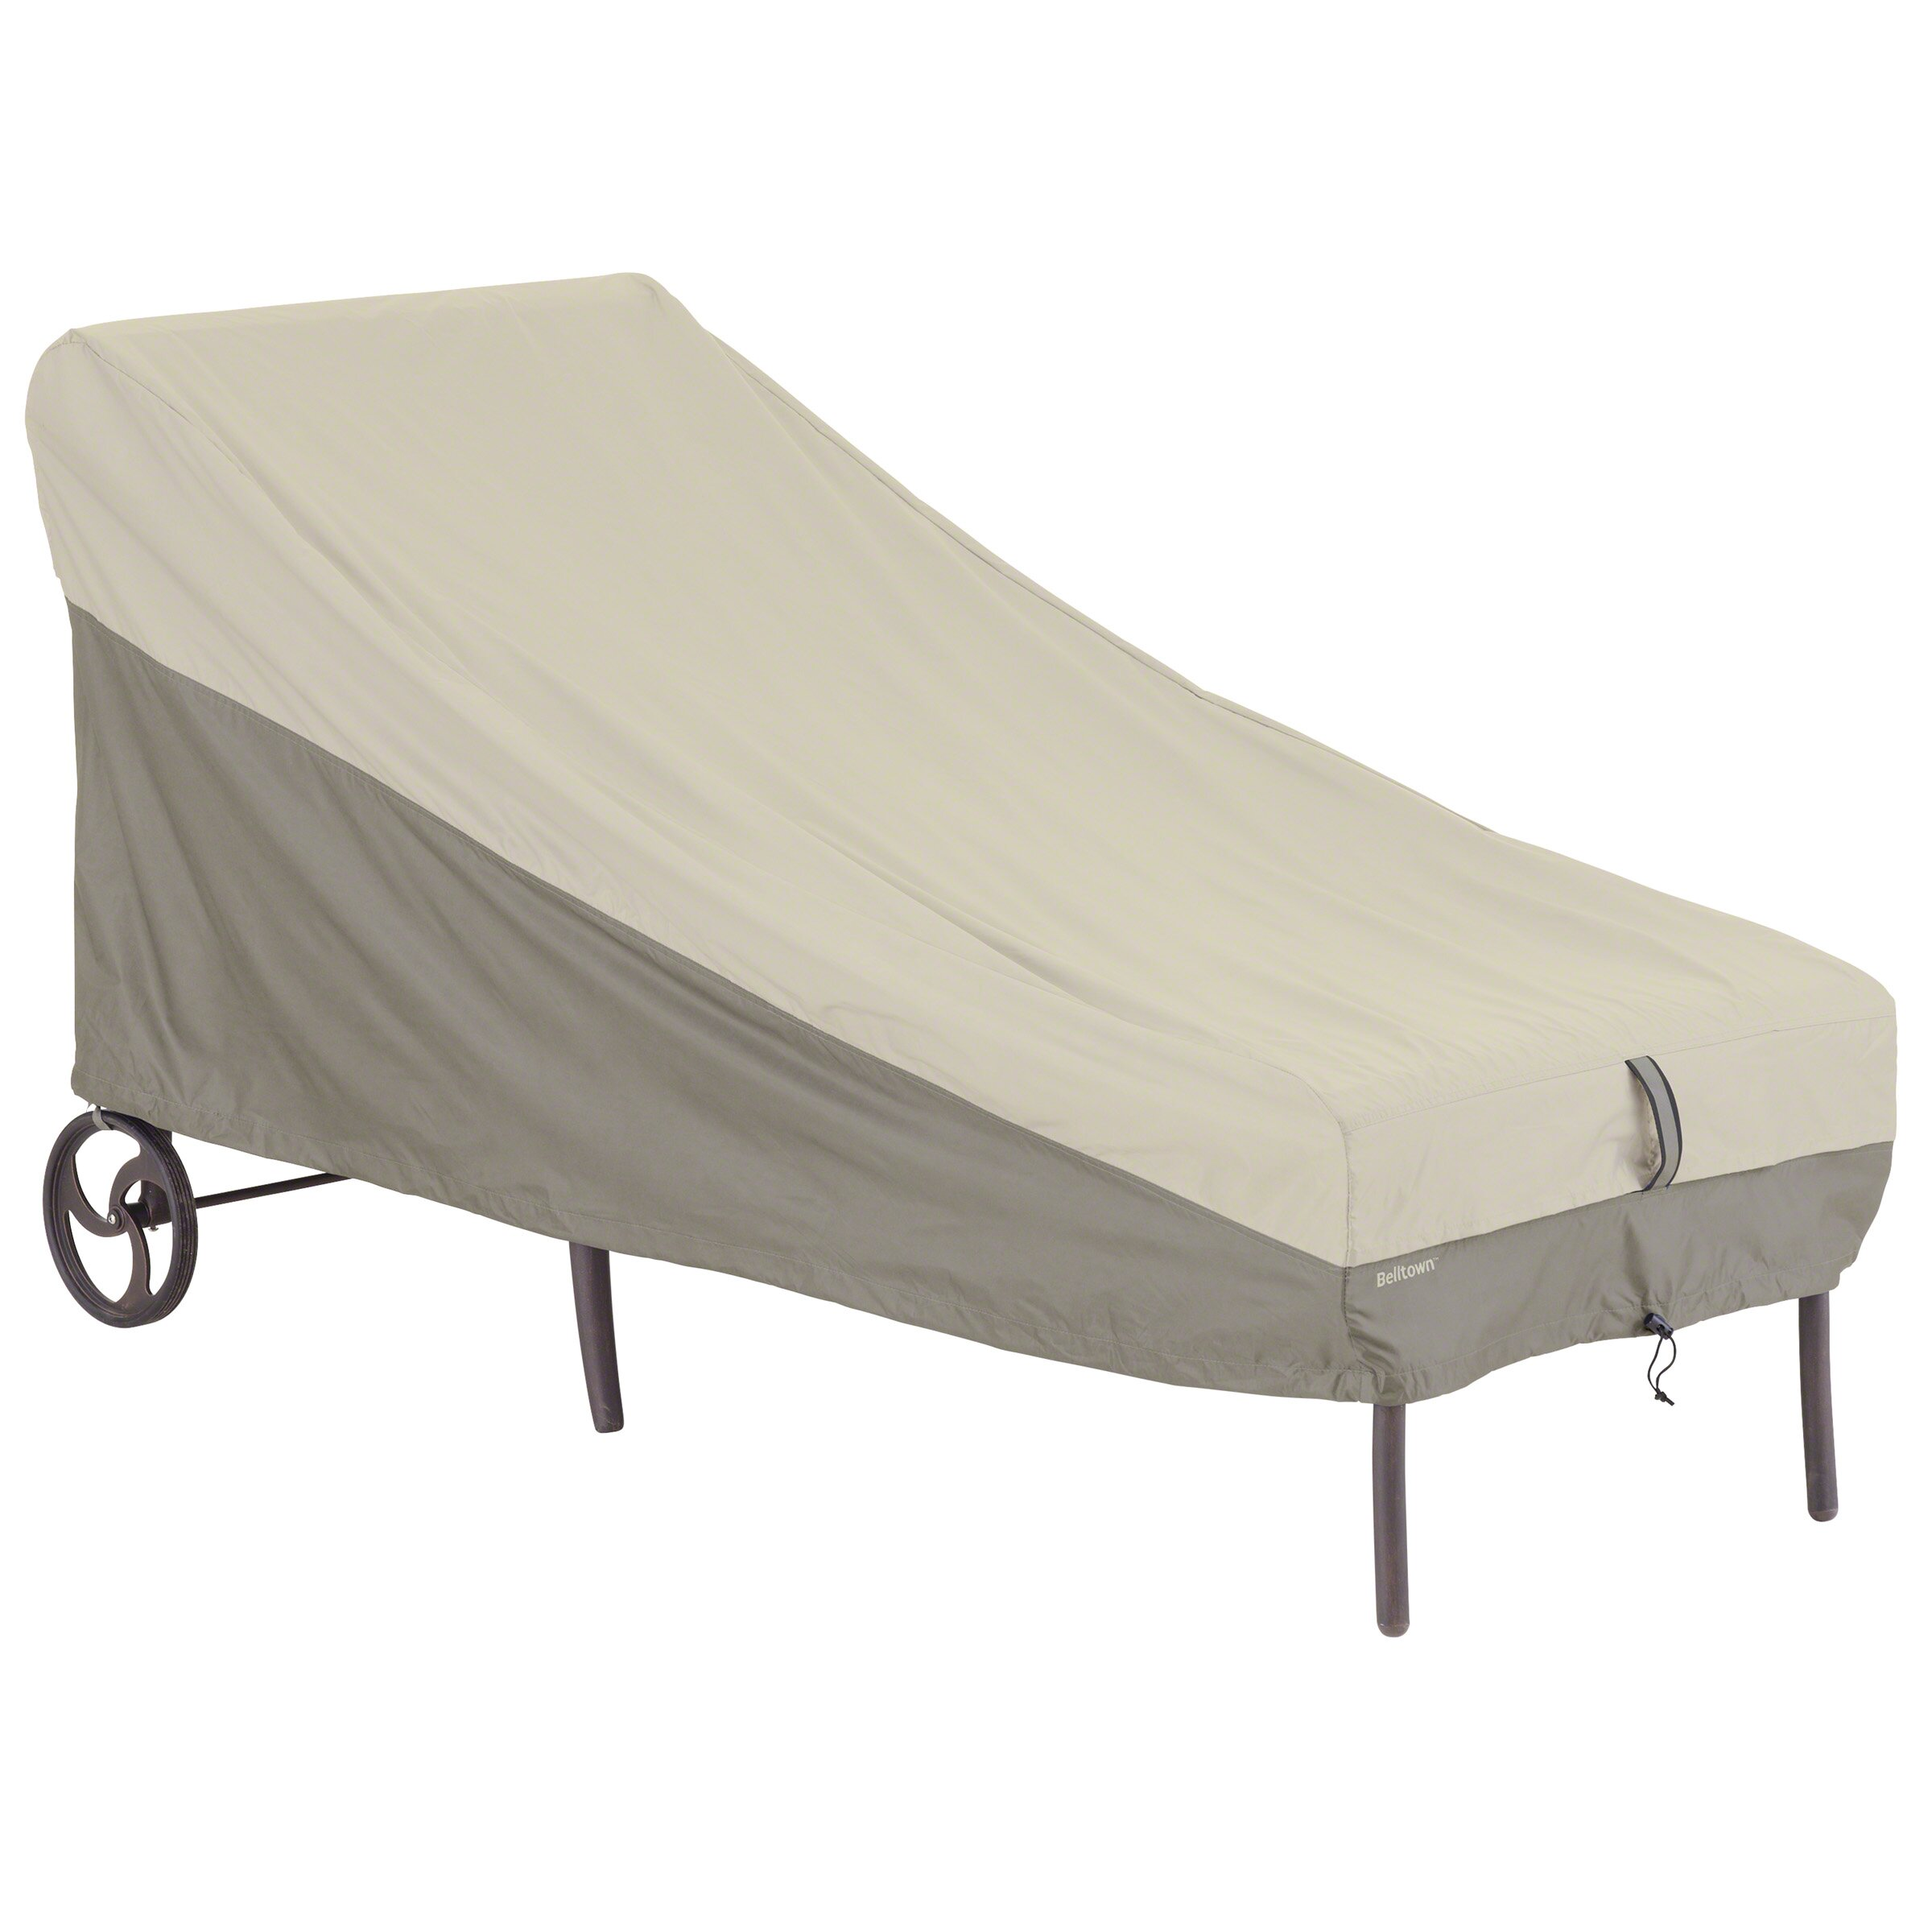 Classic accessories belltown chaise cover reviews for Chaise lounge accessories